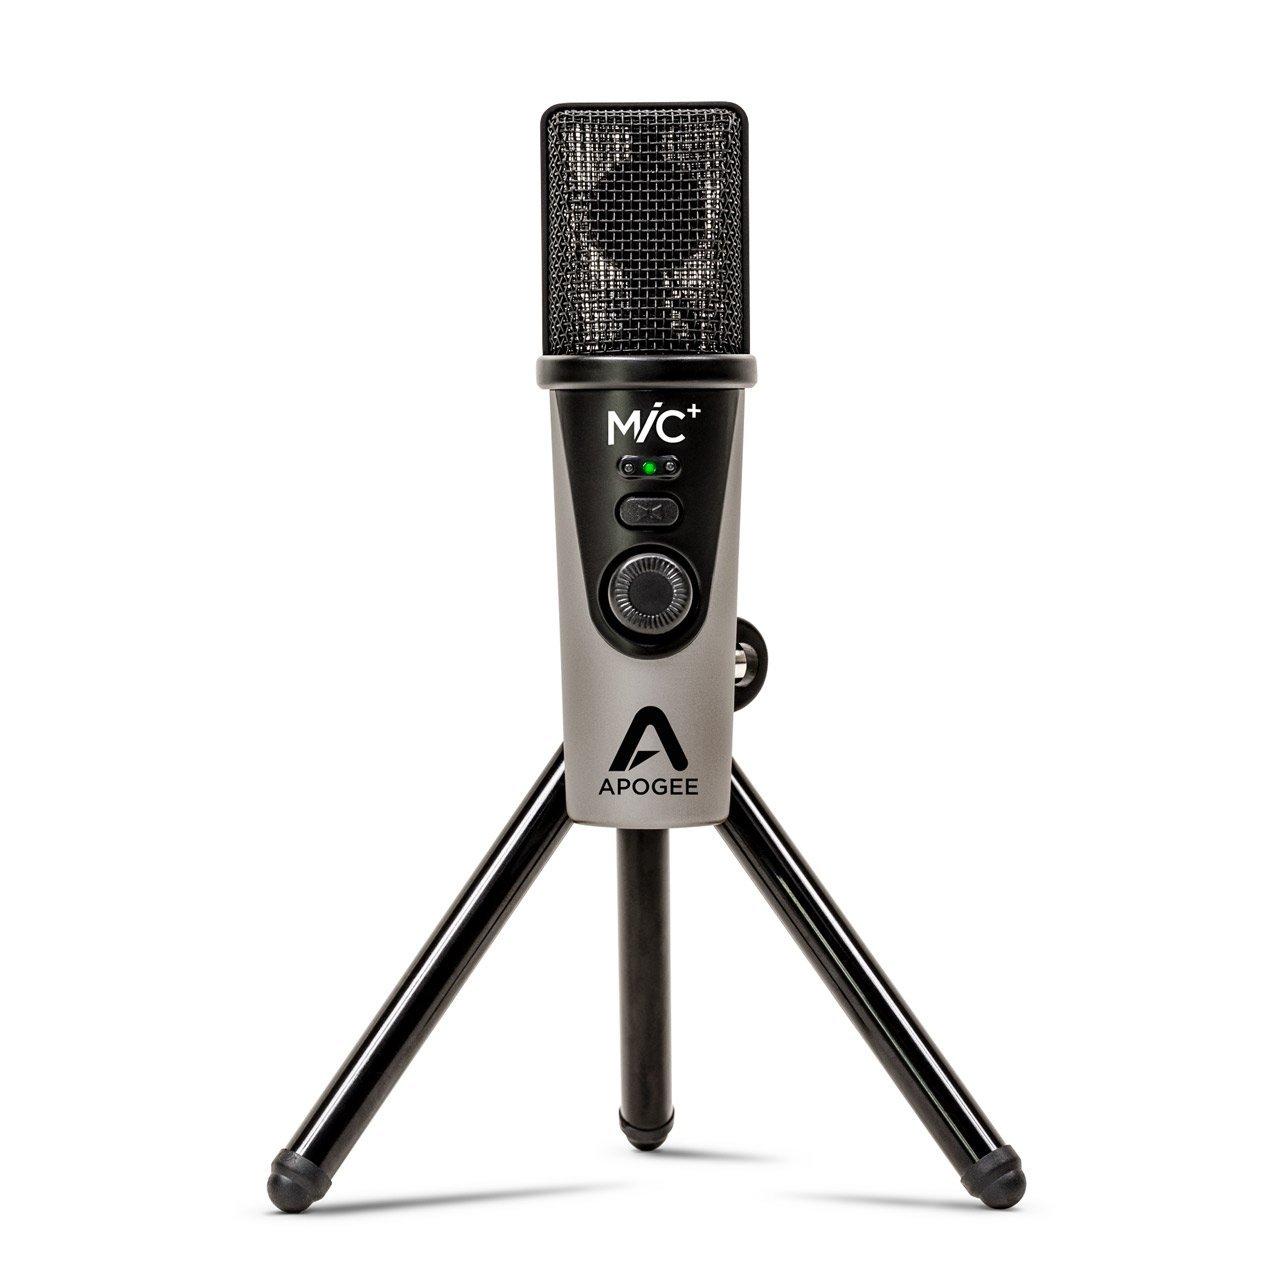 Apogee MiC+ Cardioid Condenser USB Microphone for Mac/Windows/iOS